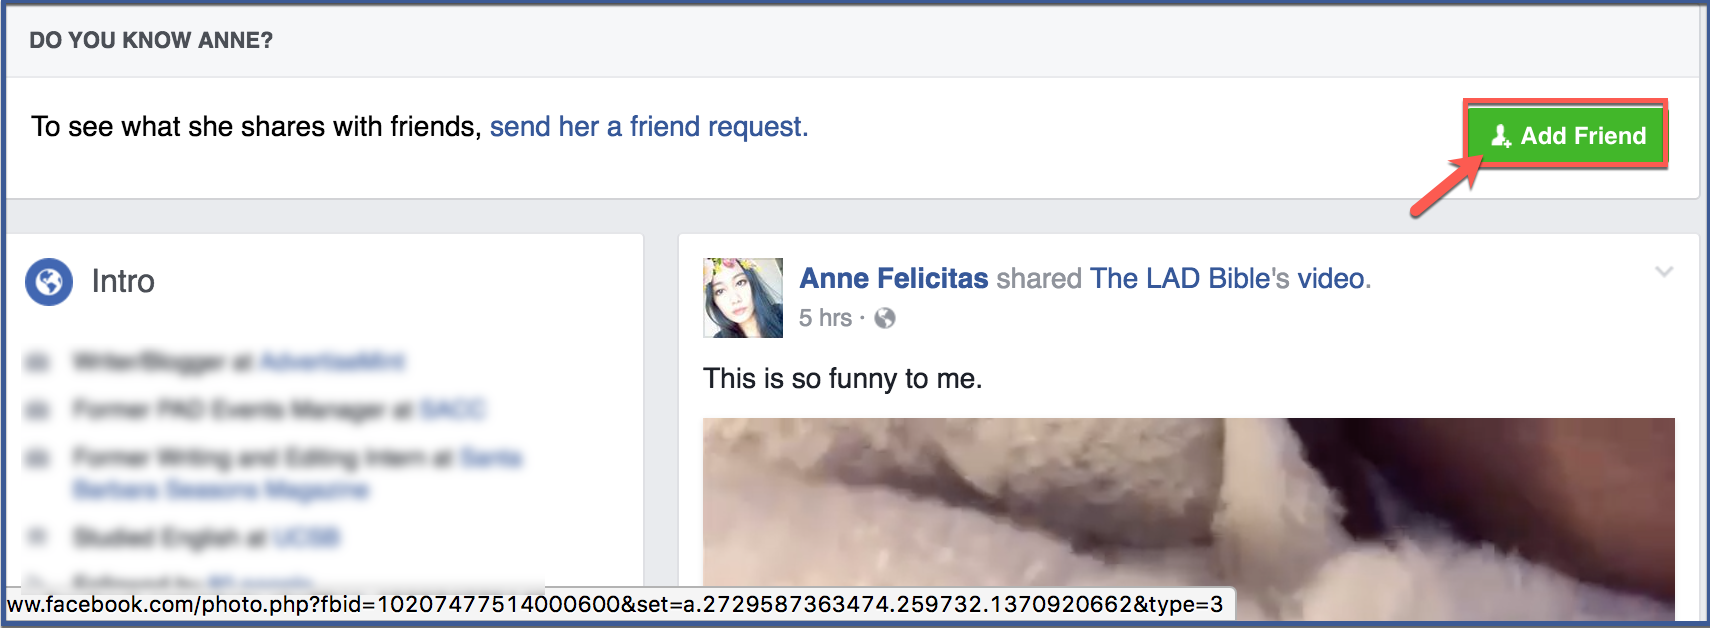 how to find friends on facebook advertisemint